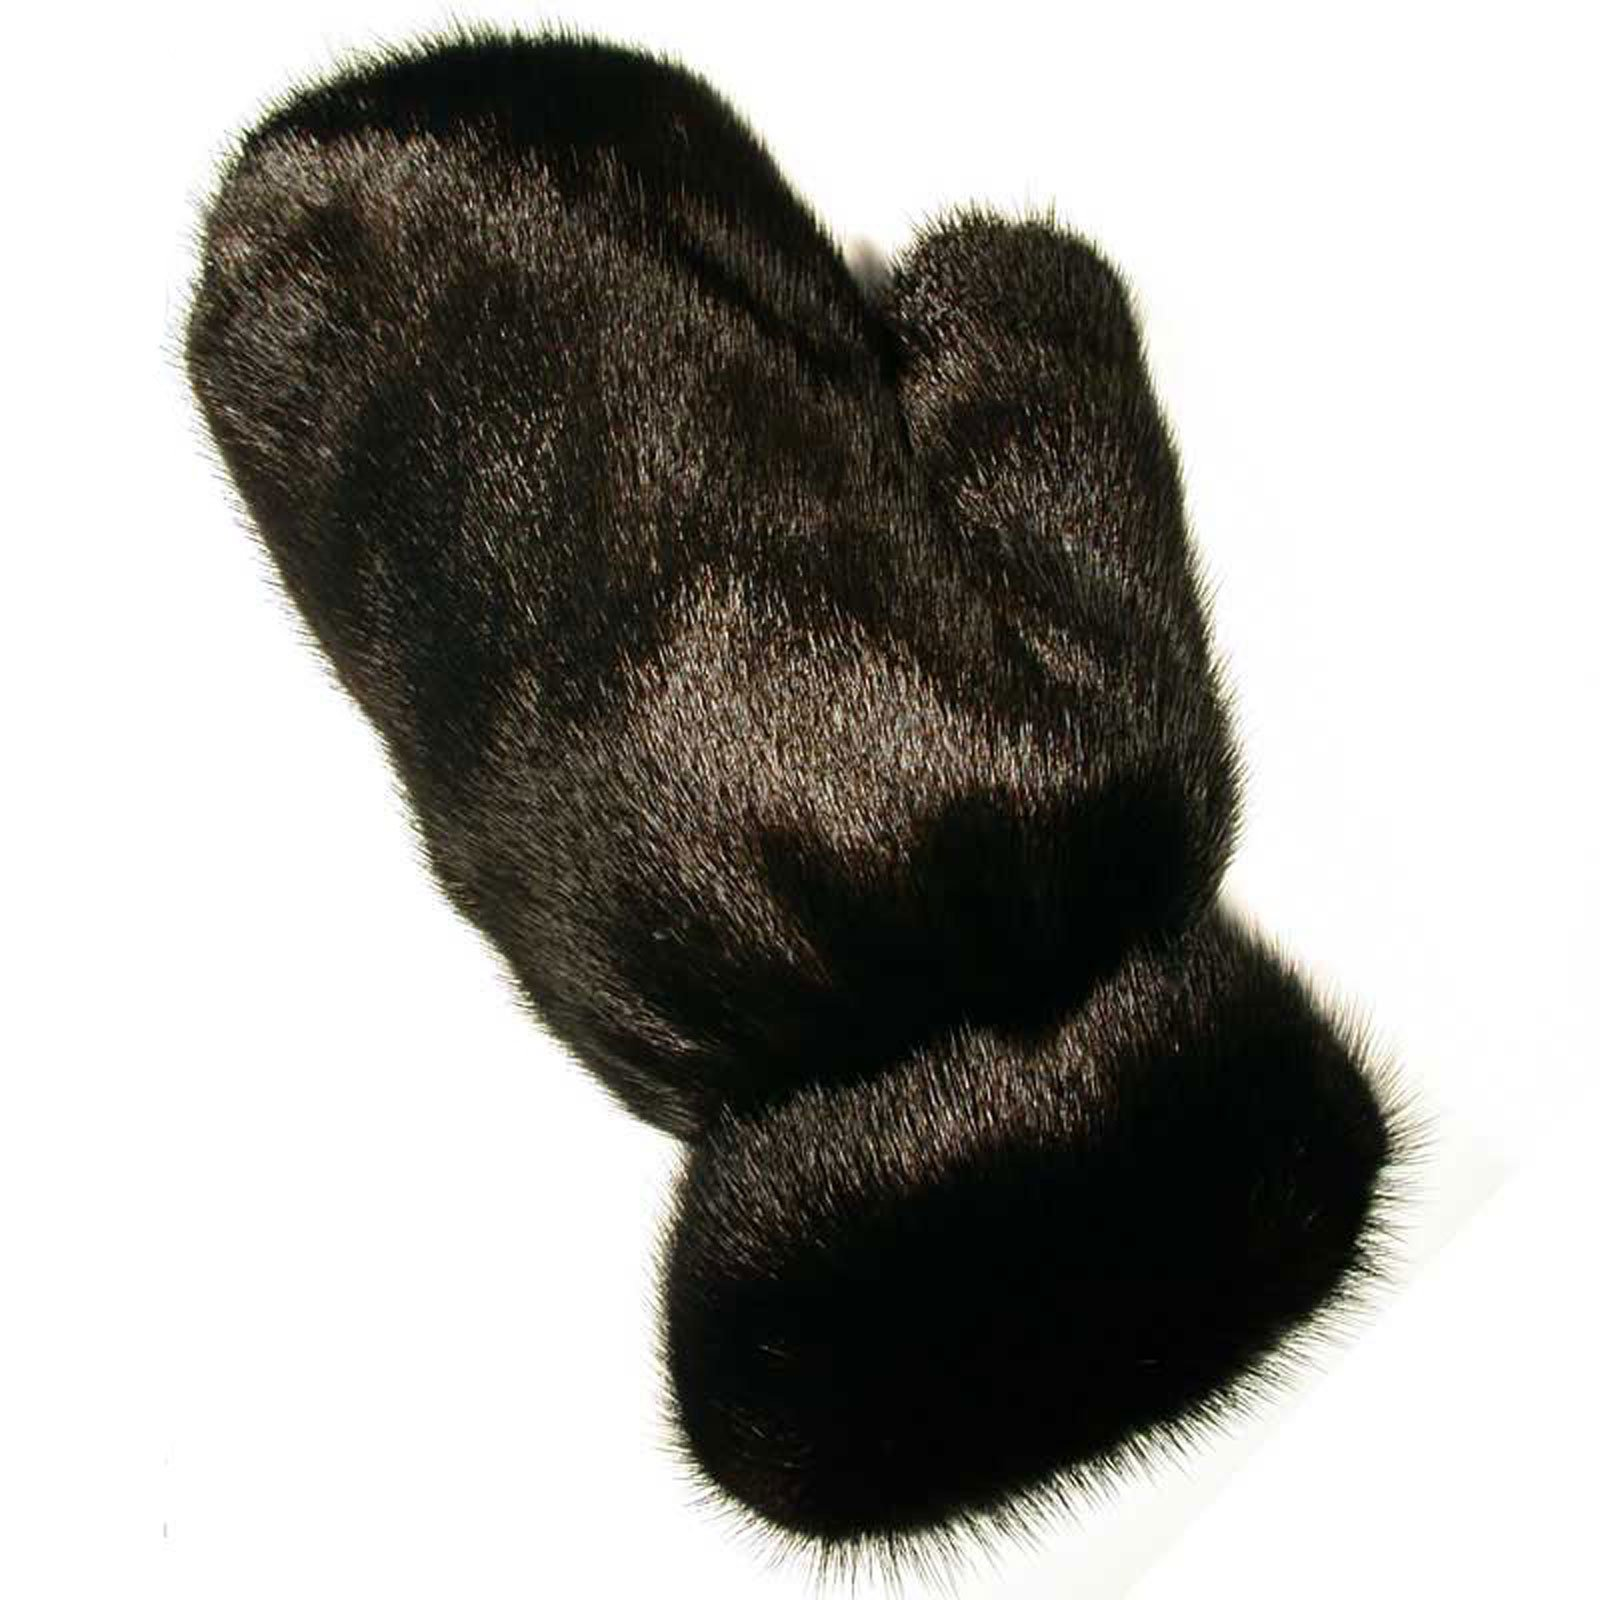 MinkgLove Mink Massage Glove, Silky & Textured Feel, Ranch Black Color, Hand Tailored, Unisex, One Size - Left Hand Single Sided Fur by MinkgLove